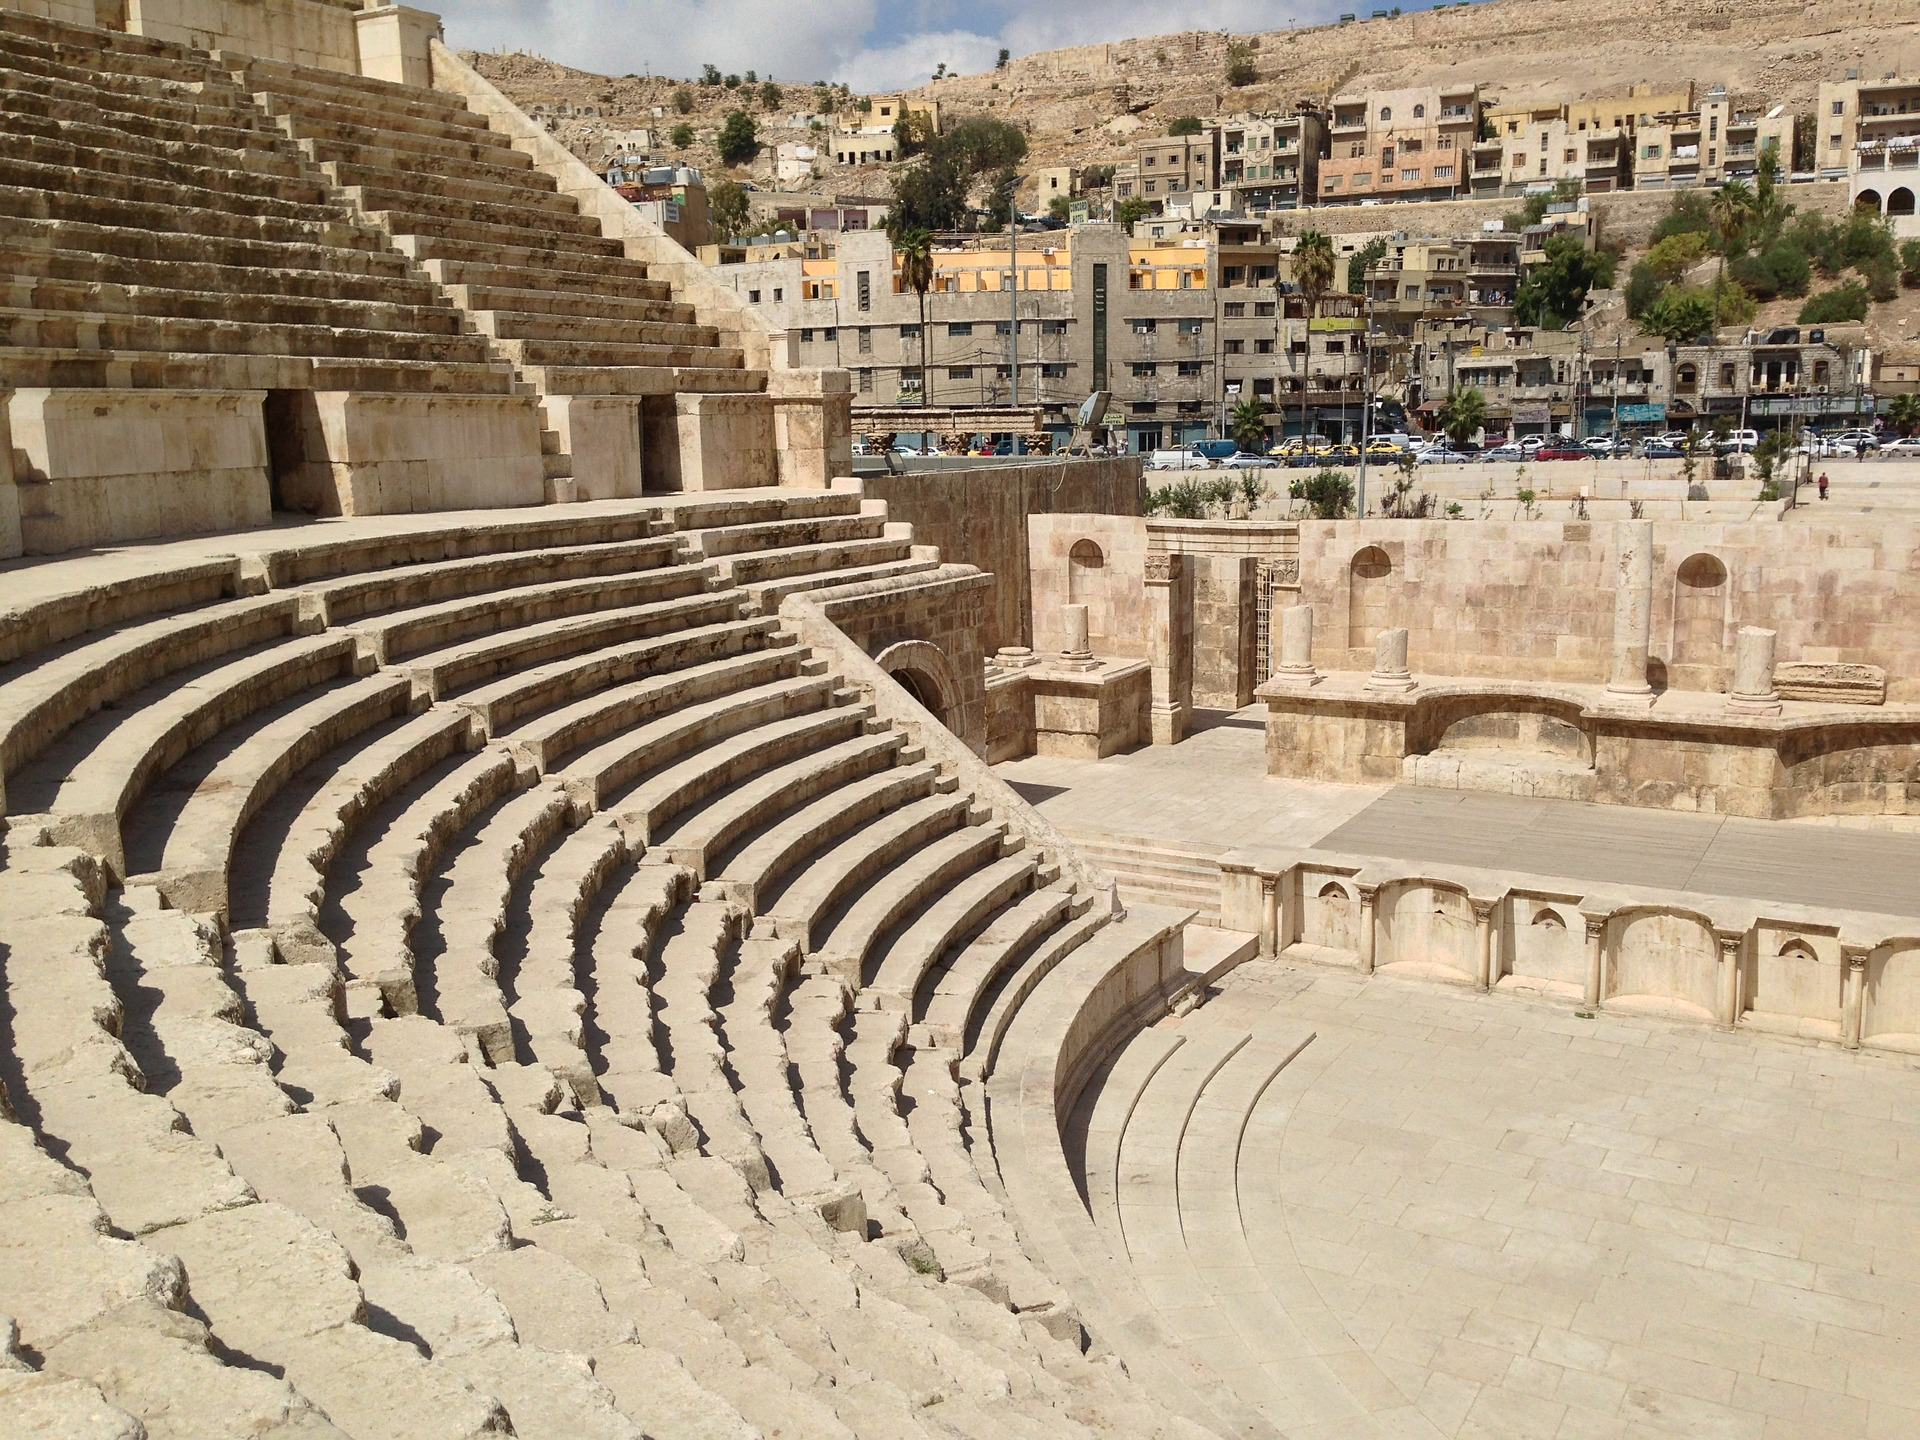 amphitheater in amman